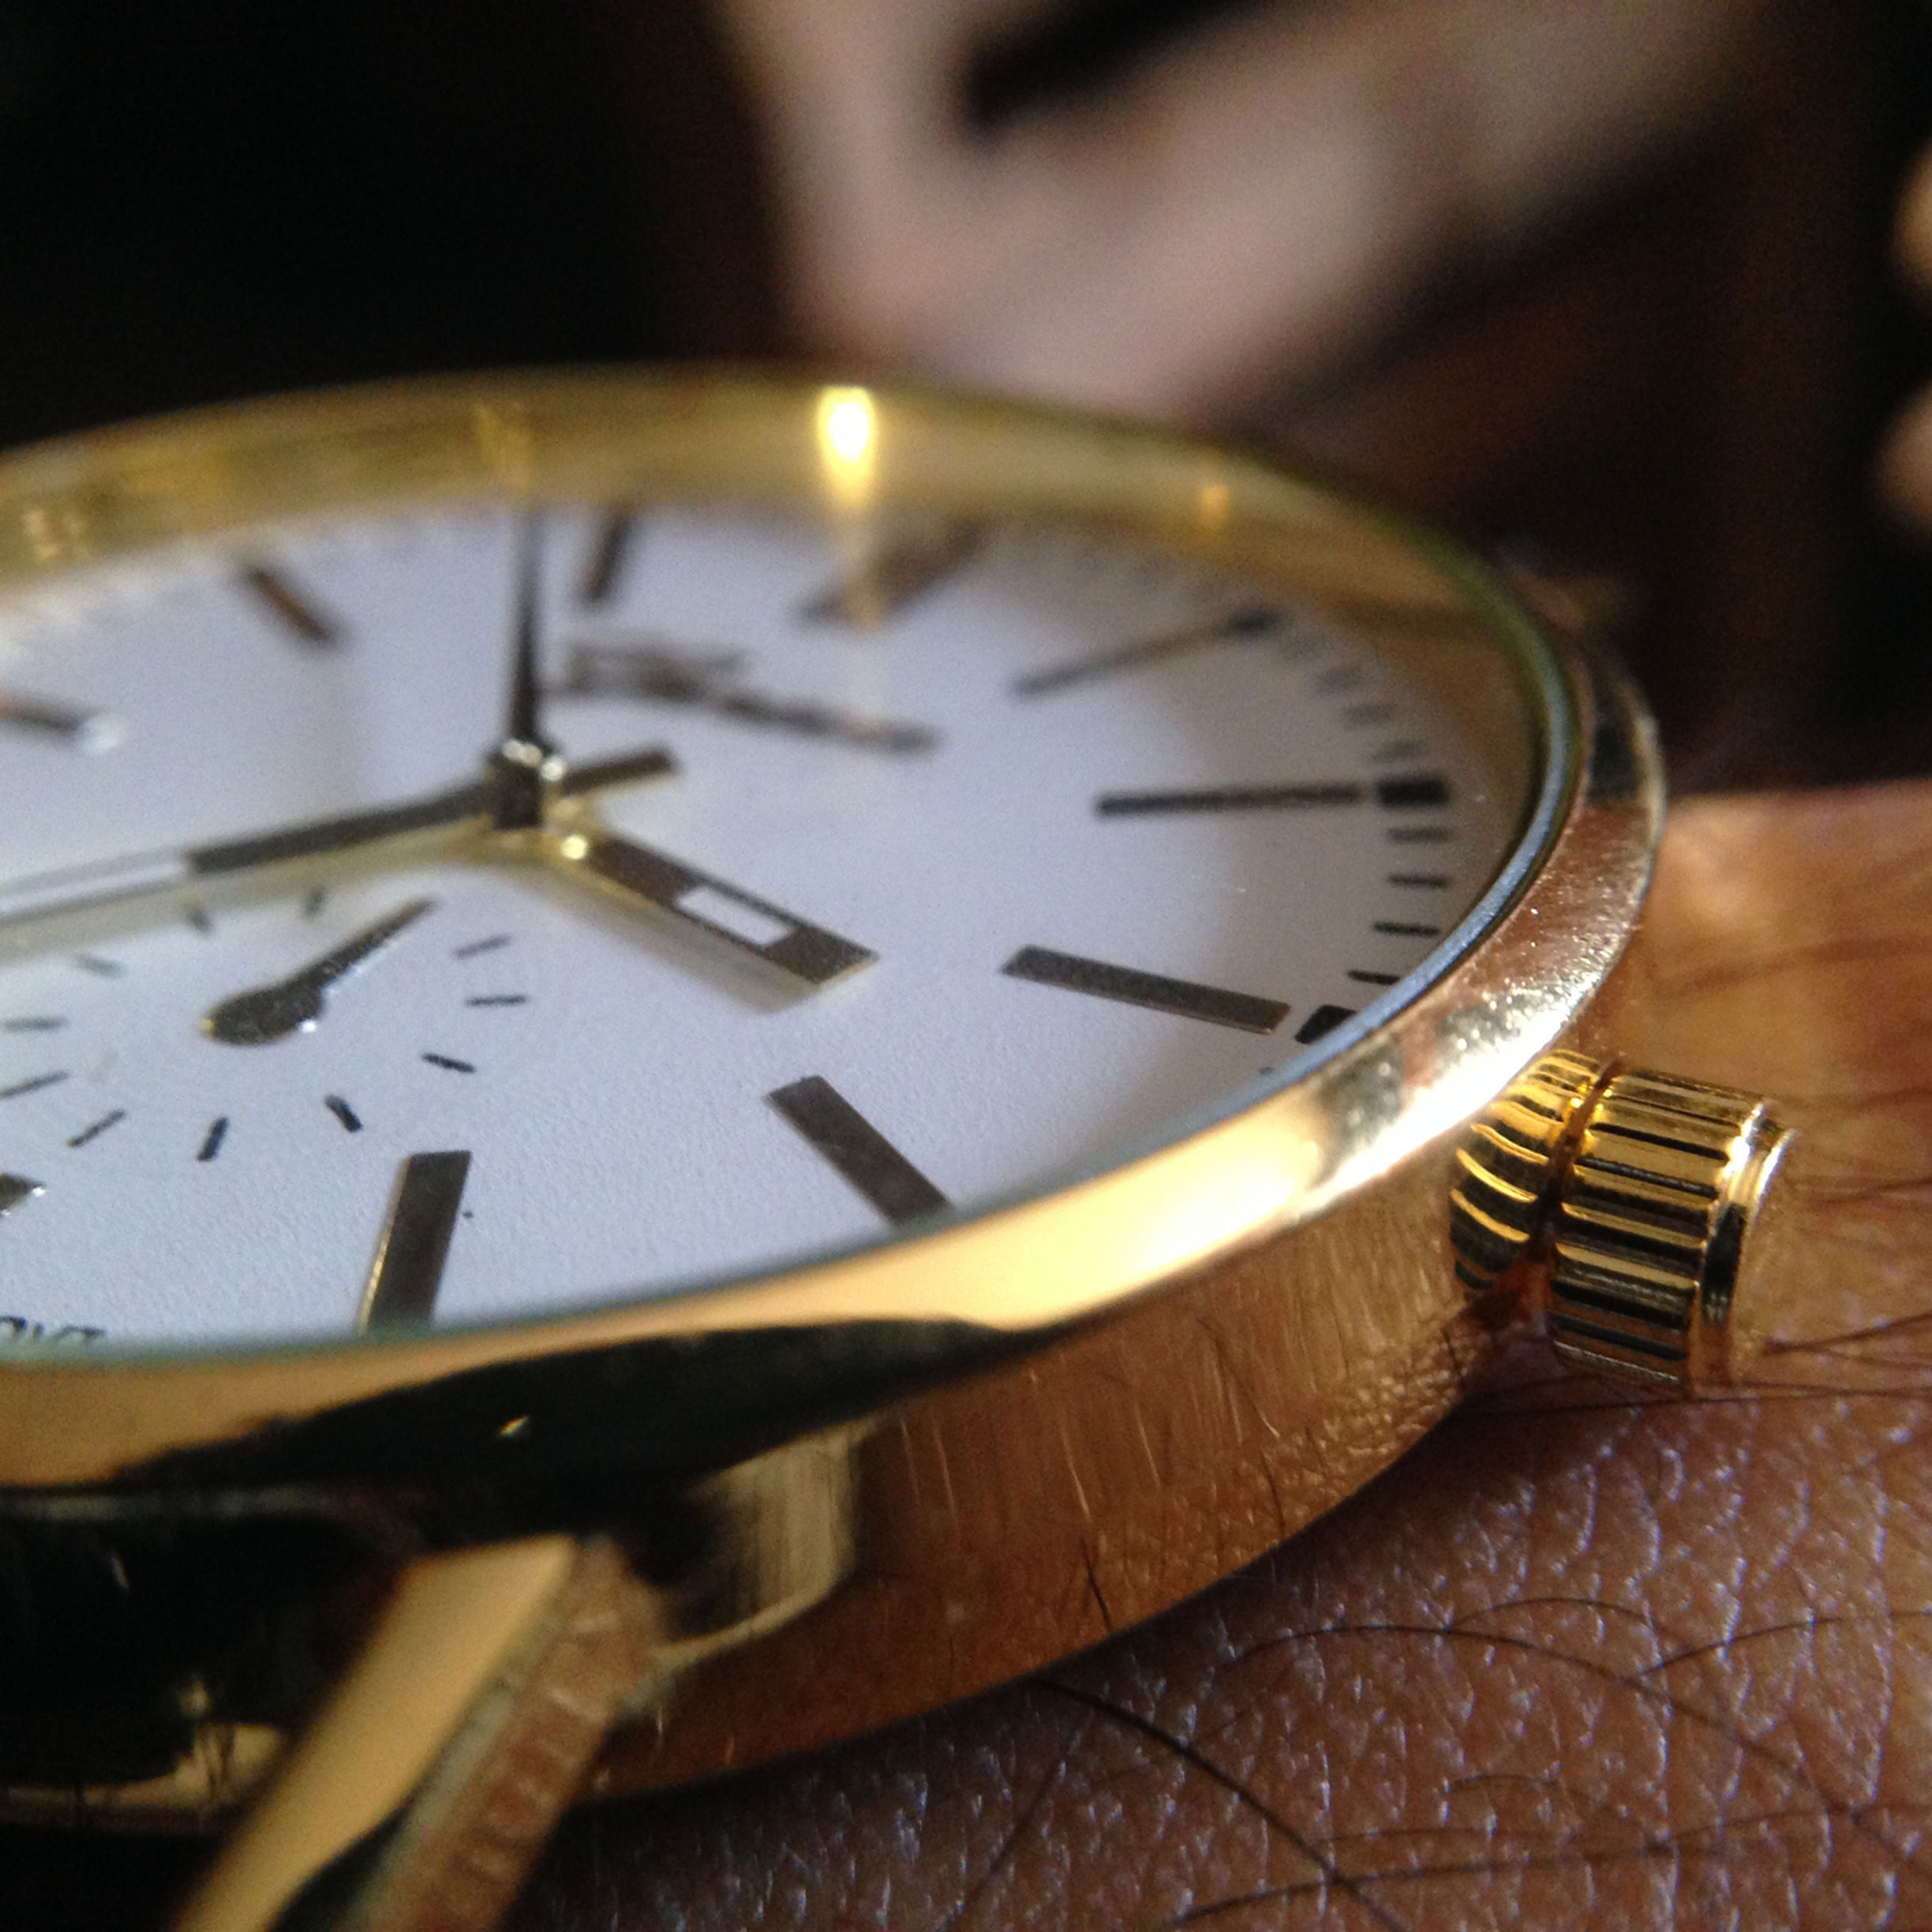 Watch Valuations and Repairs